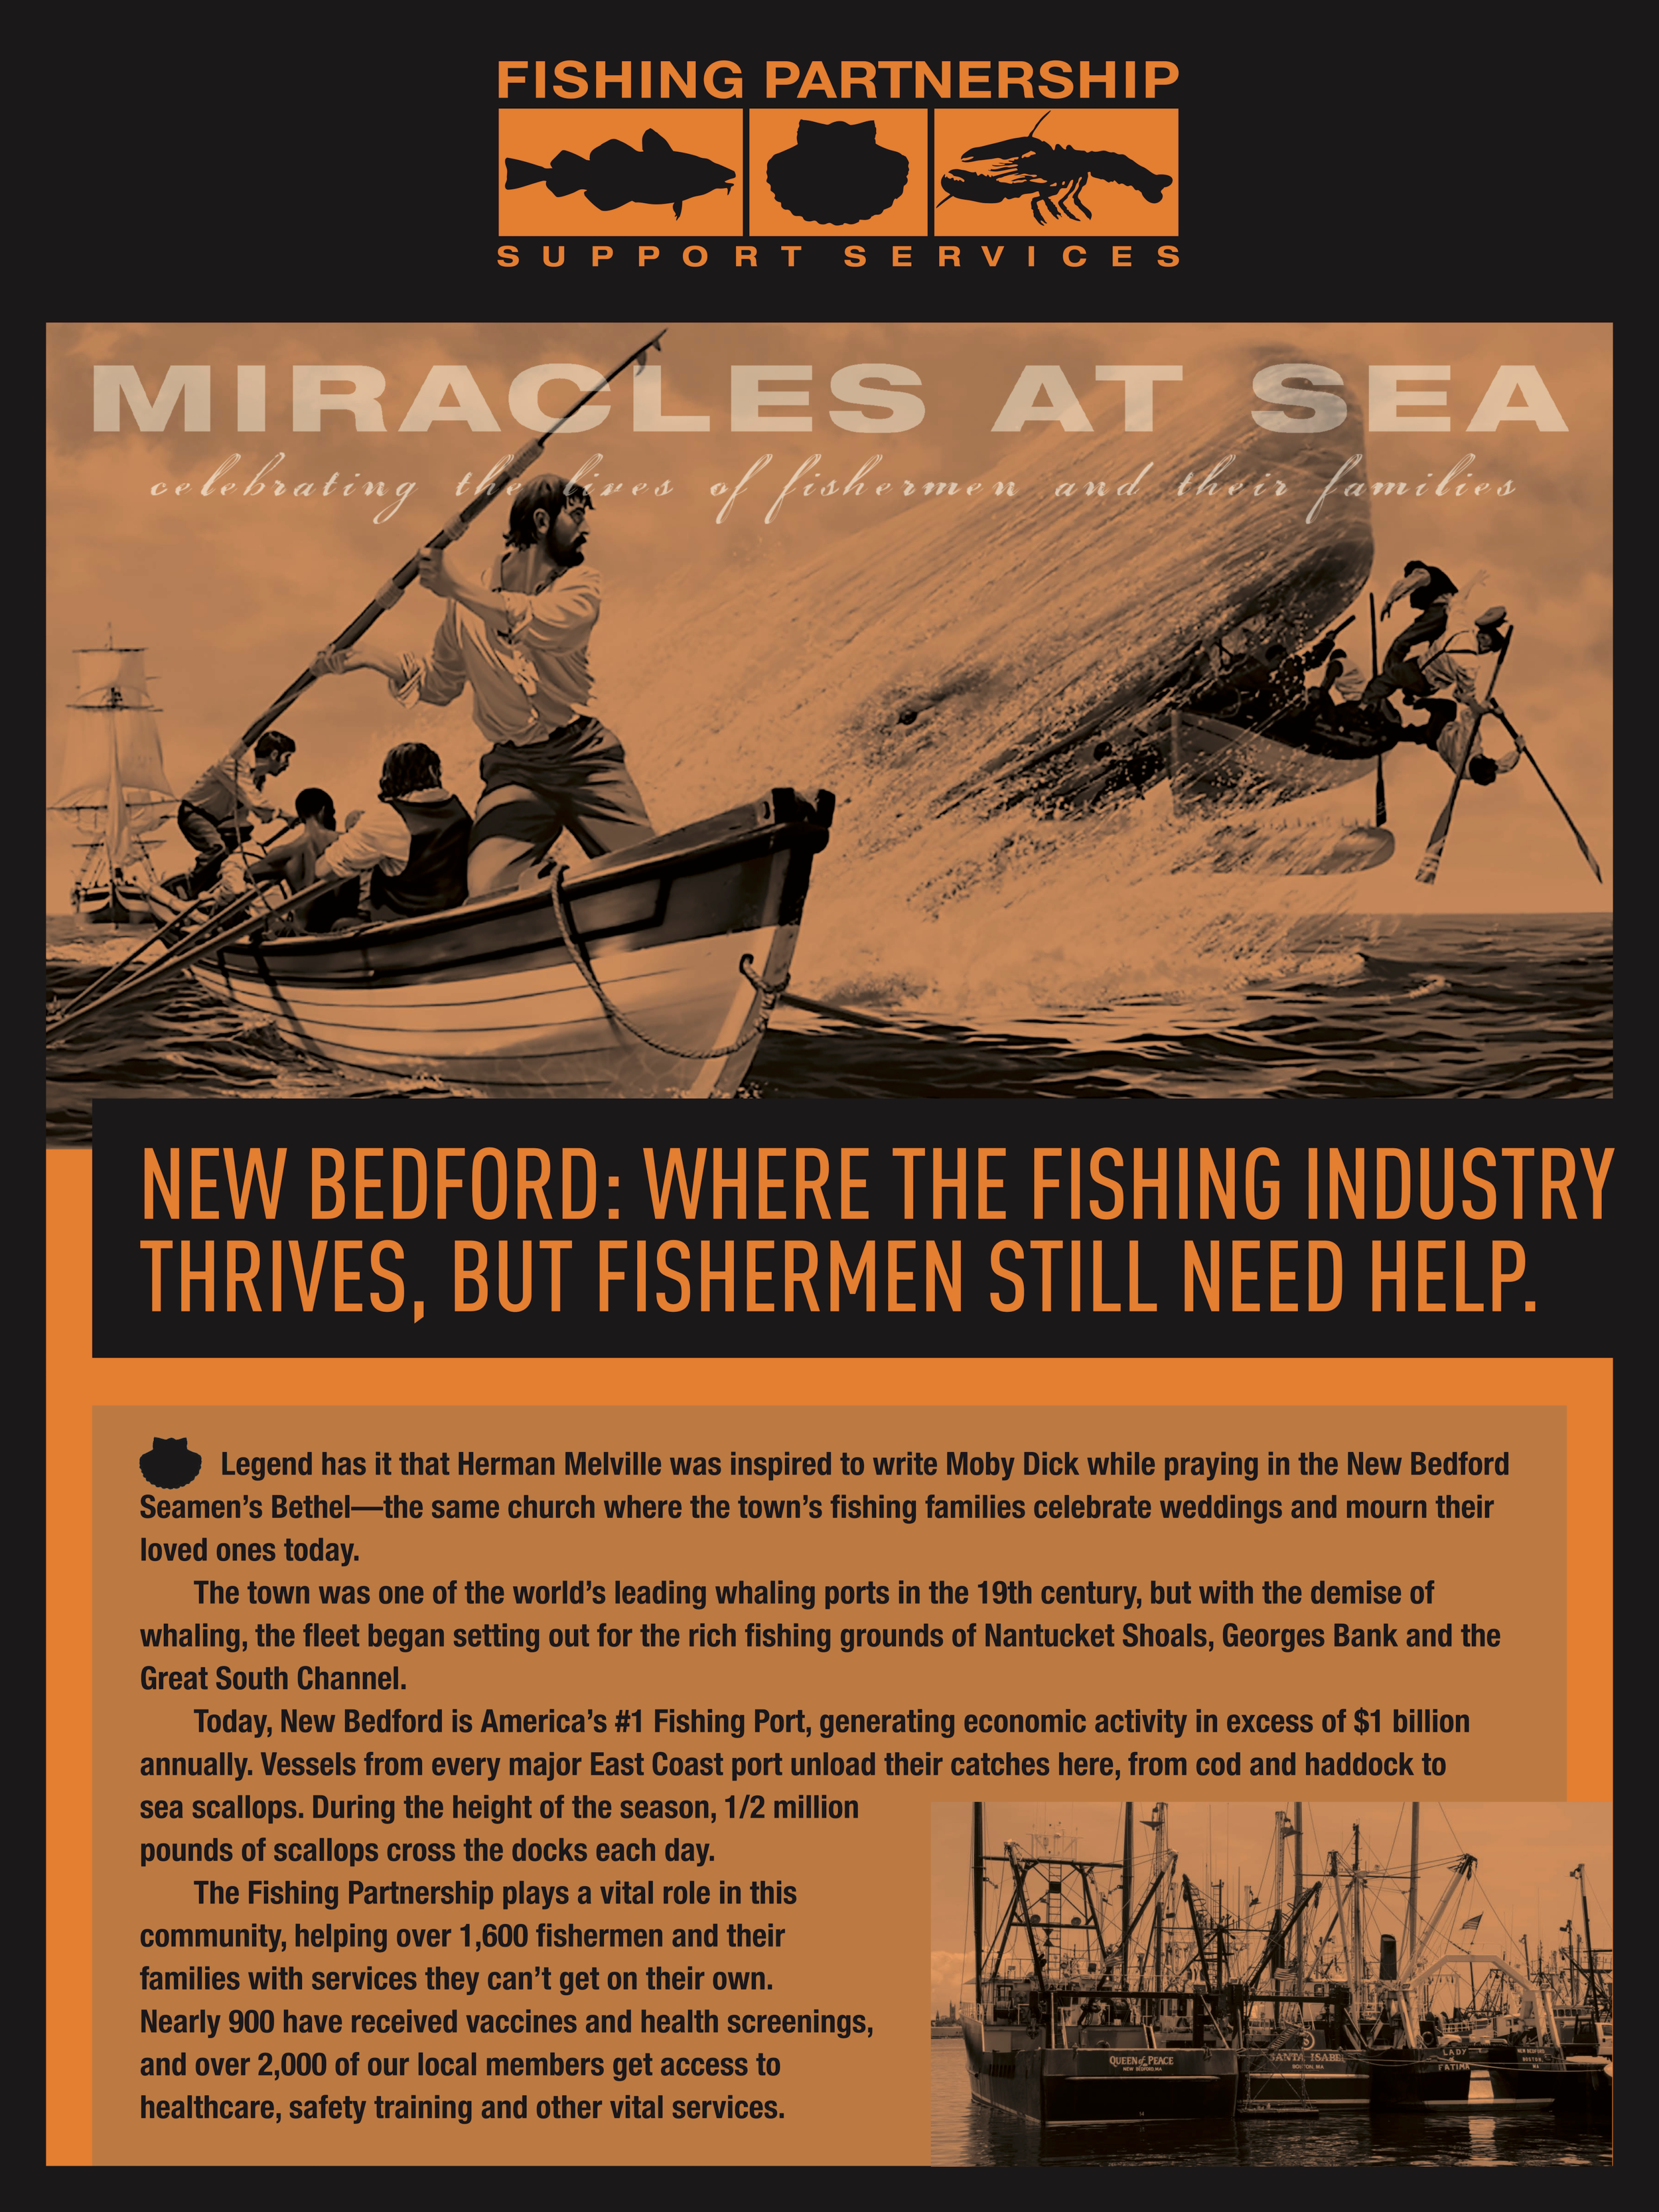 Fishing Partnership - A non-profit based in Boston, the Fishing Partnership works with over 19,000 commercial fishermen and their families, delivering vital services such as healthcare, safety training and addiction counseling. We worked with them throughout the summer of 2017, creating posters, an invitation, email and a program book for their 20th Anniversary event.VIEW THE WORK